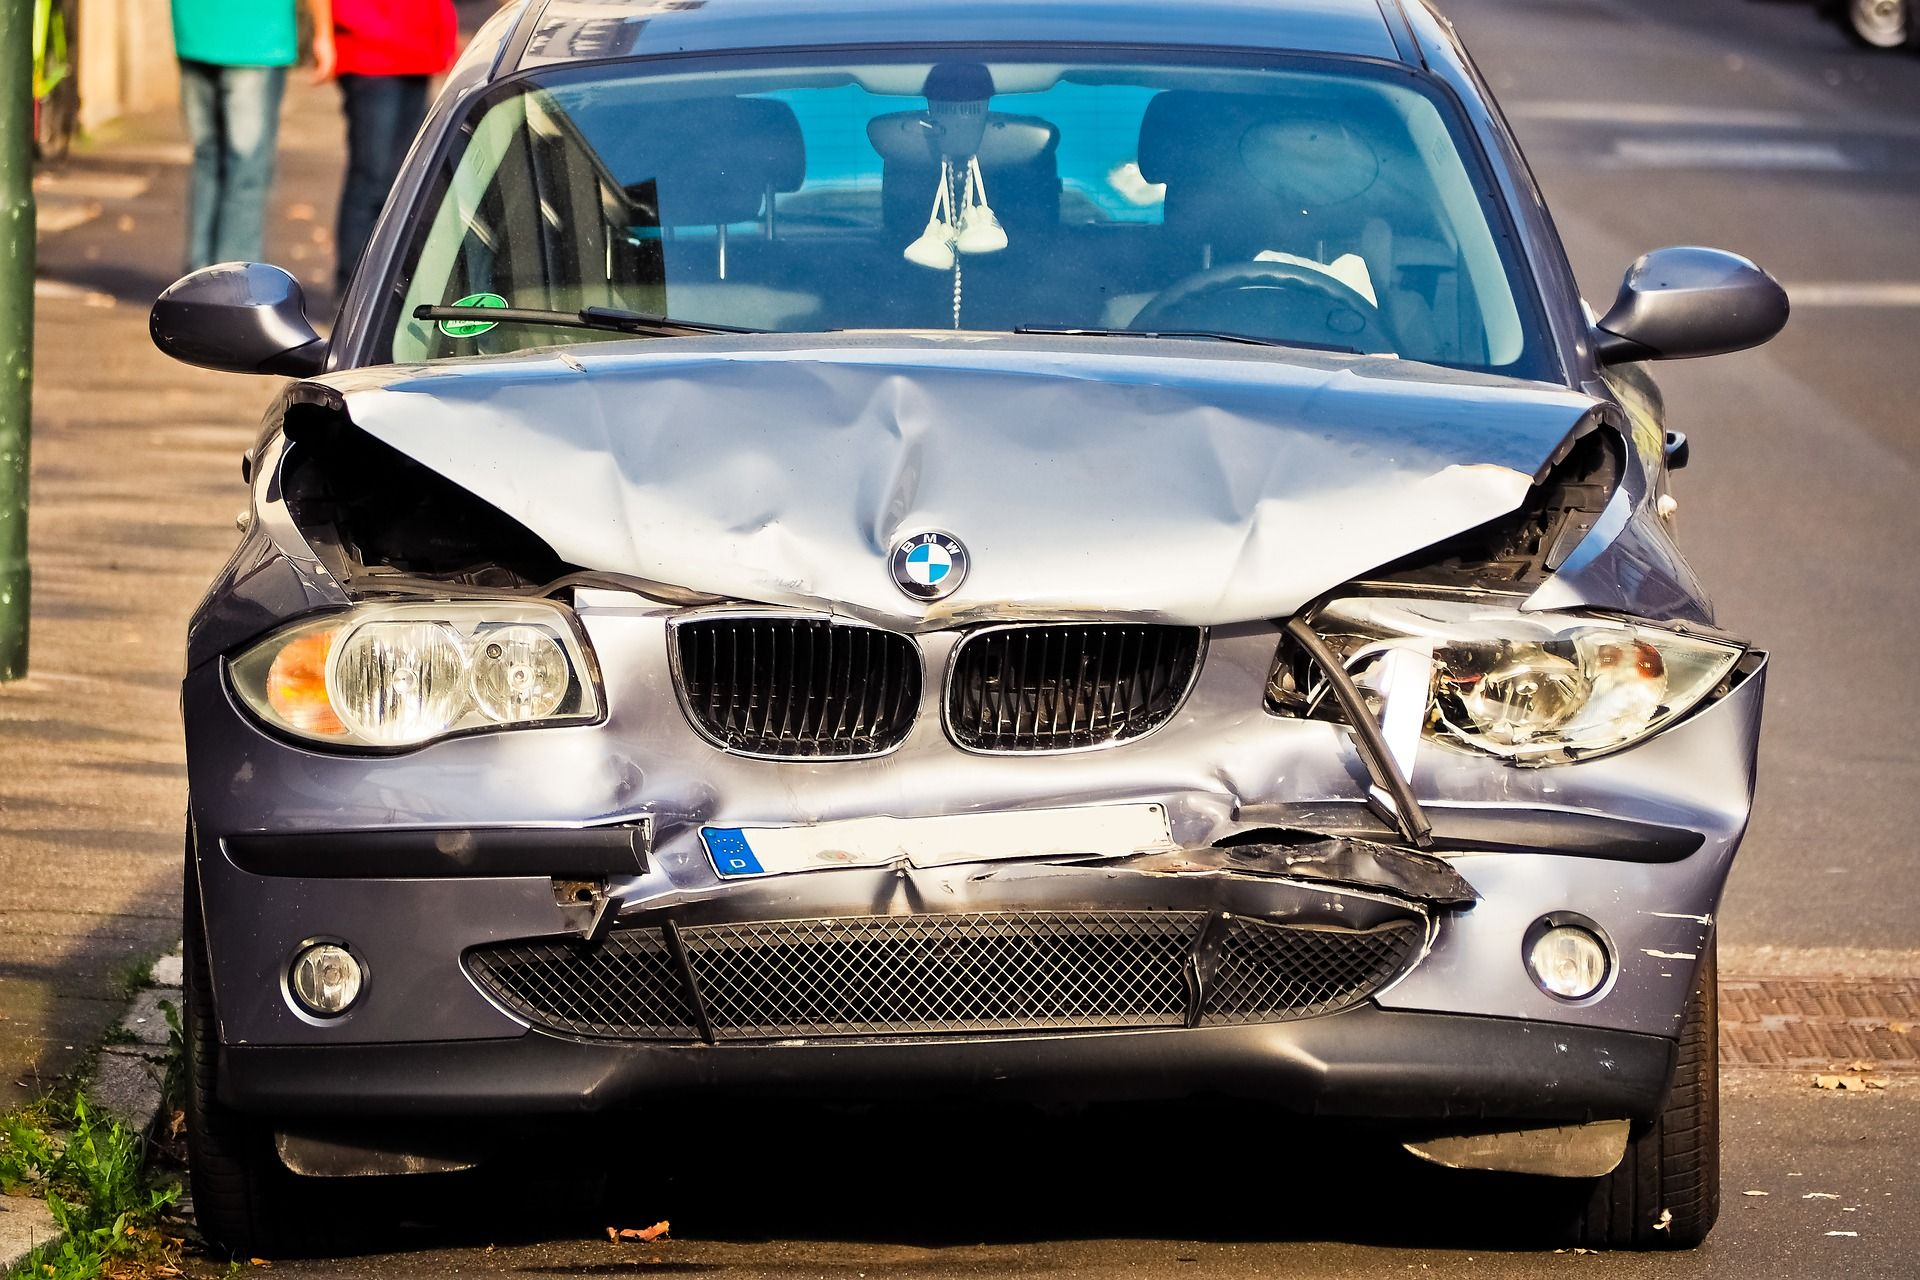 Pin On Auto Accidents